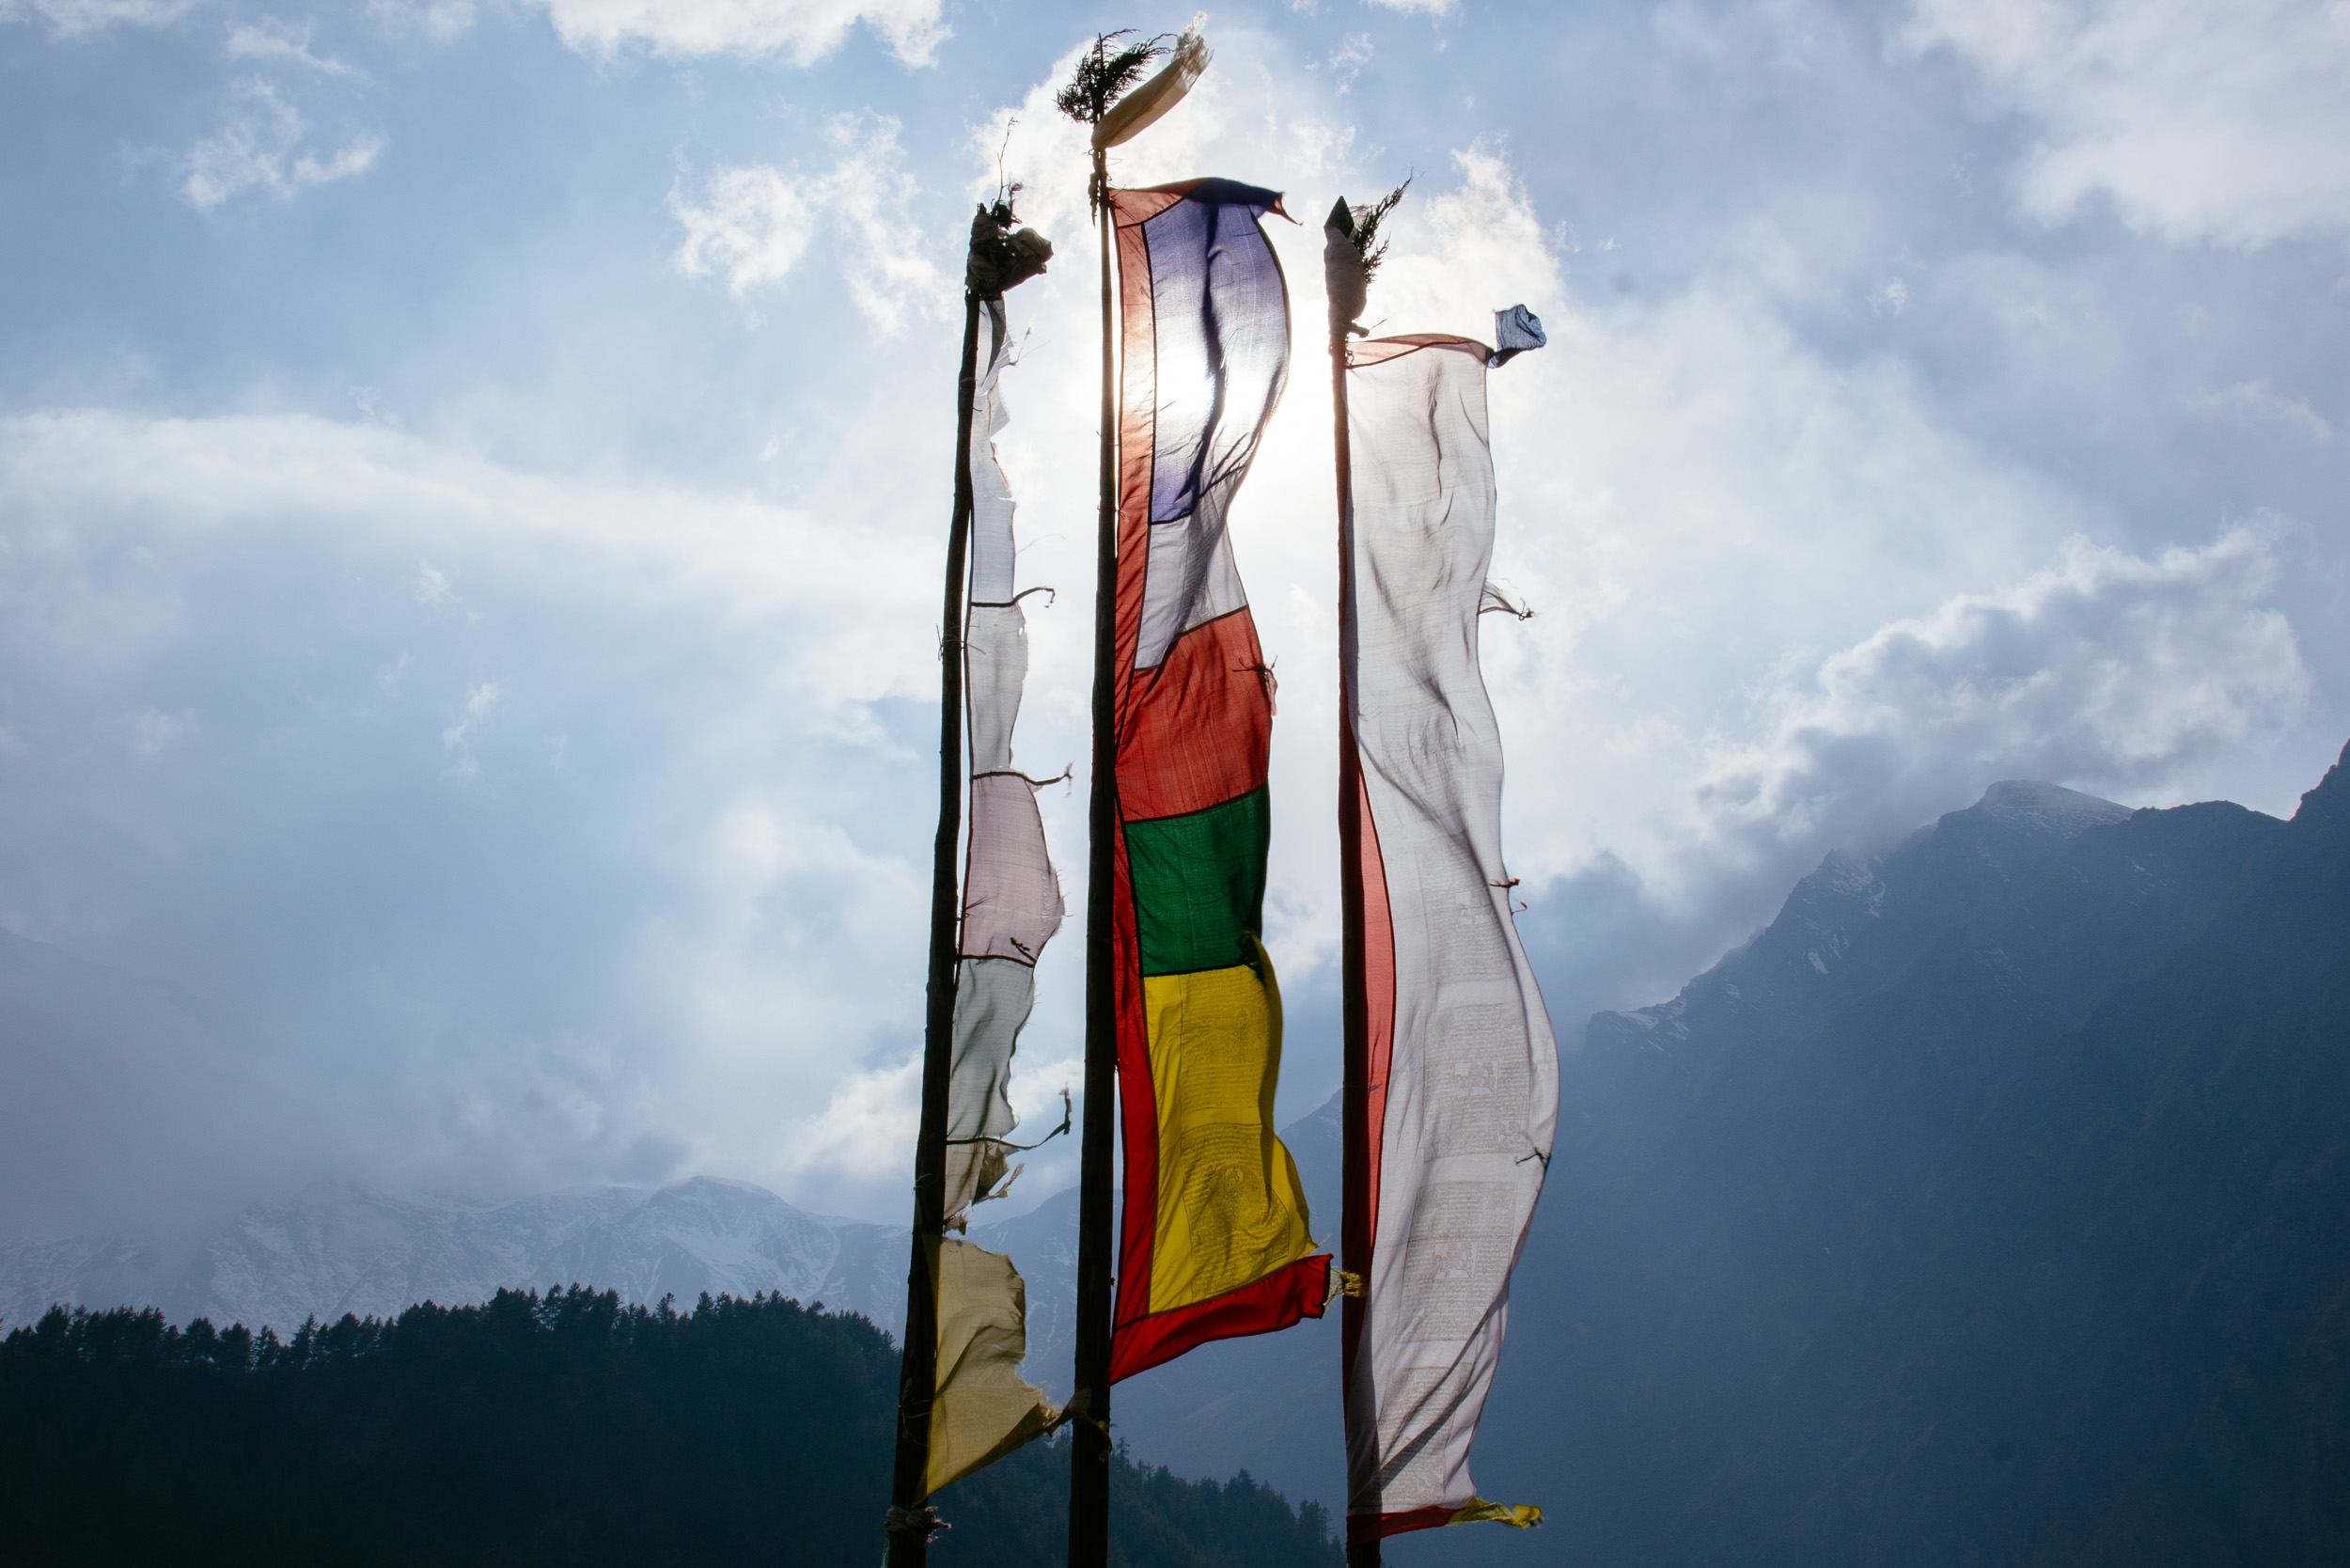 Prayer flags in the breeze in the Annapurna ranges - discovering the temples of Nepal with Urban Adventures.jpg